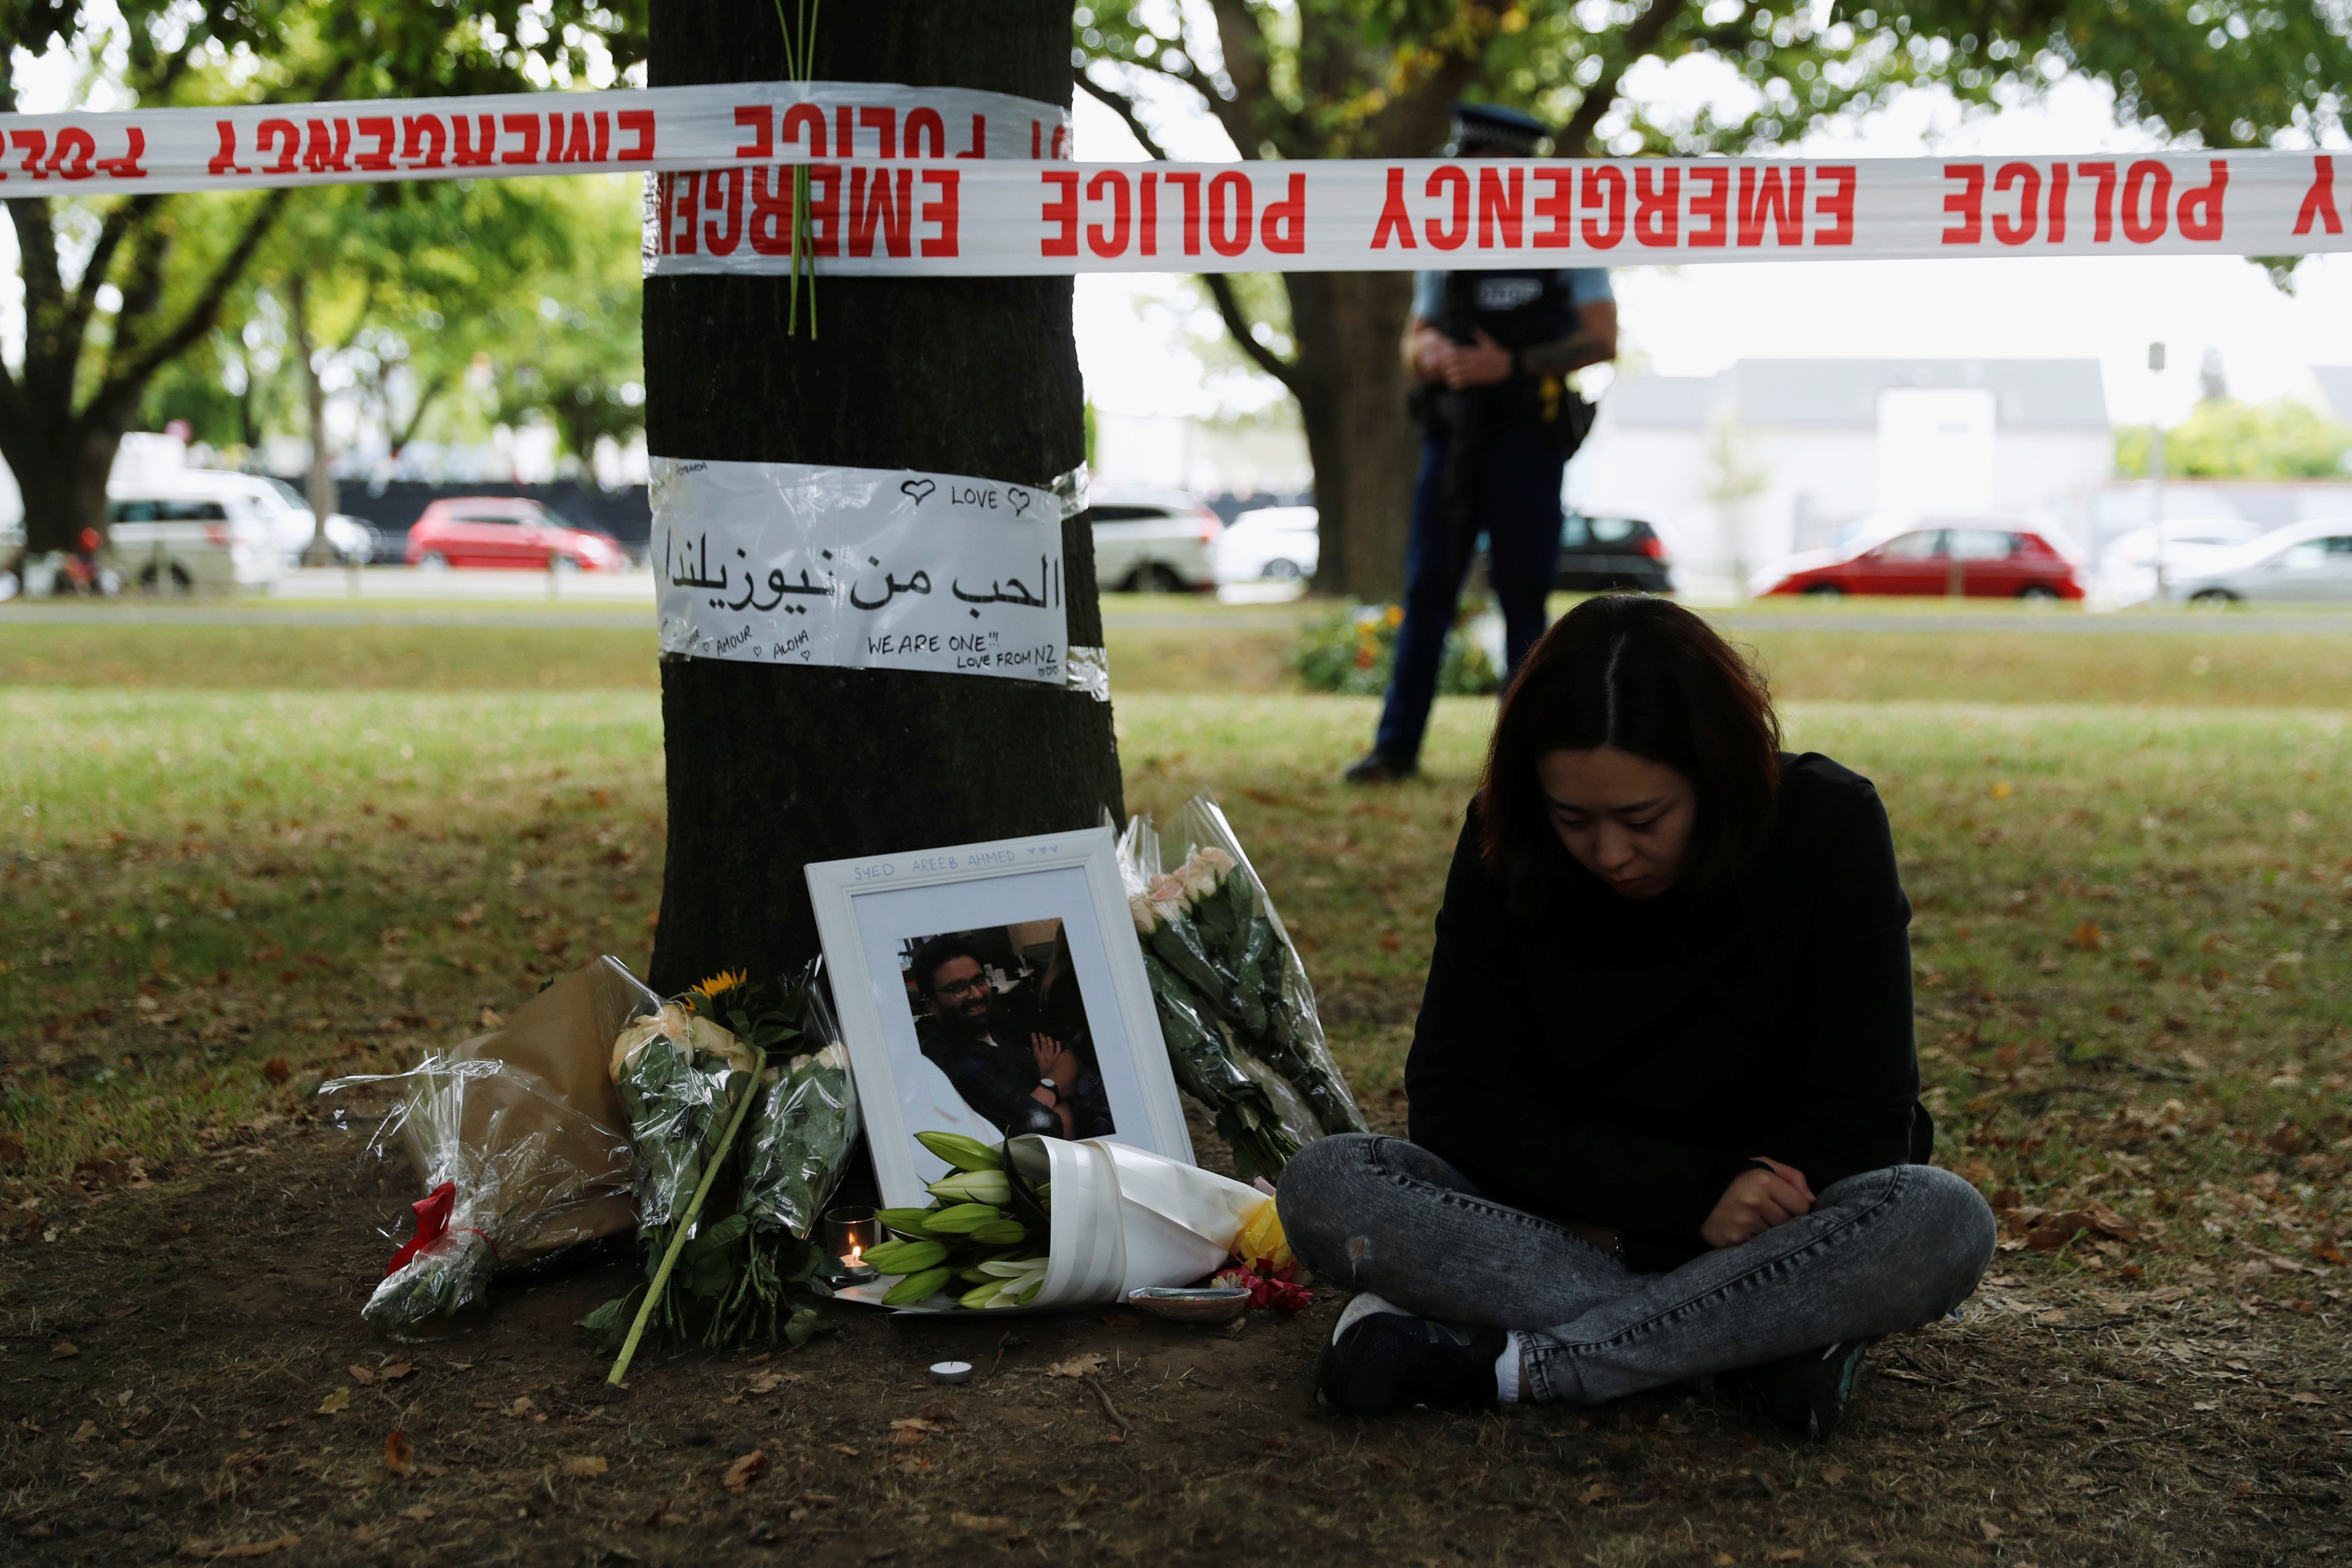 A woman sits next to flowers and messages displayed at a memorial site for victims of Friday's shooting, in front of the Masjid Al Noor mosque in Christchurch, New Zealand 18 March, 2019 (REUTERS)